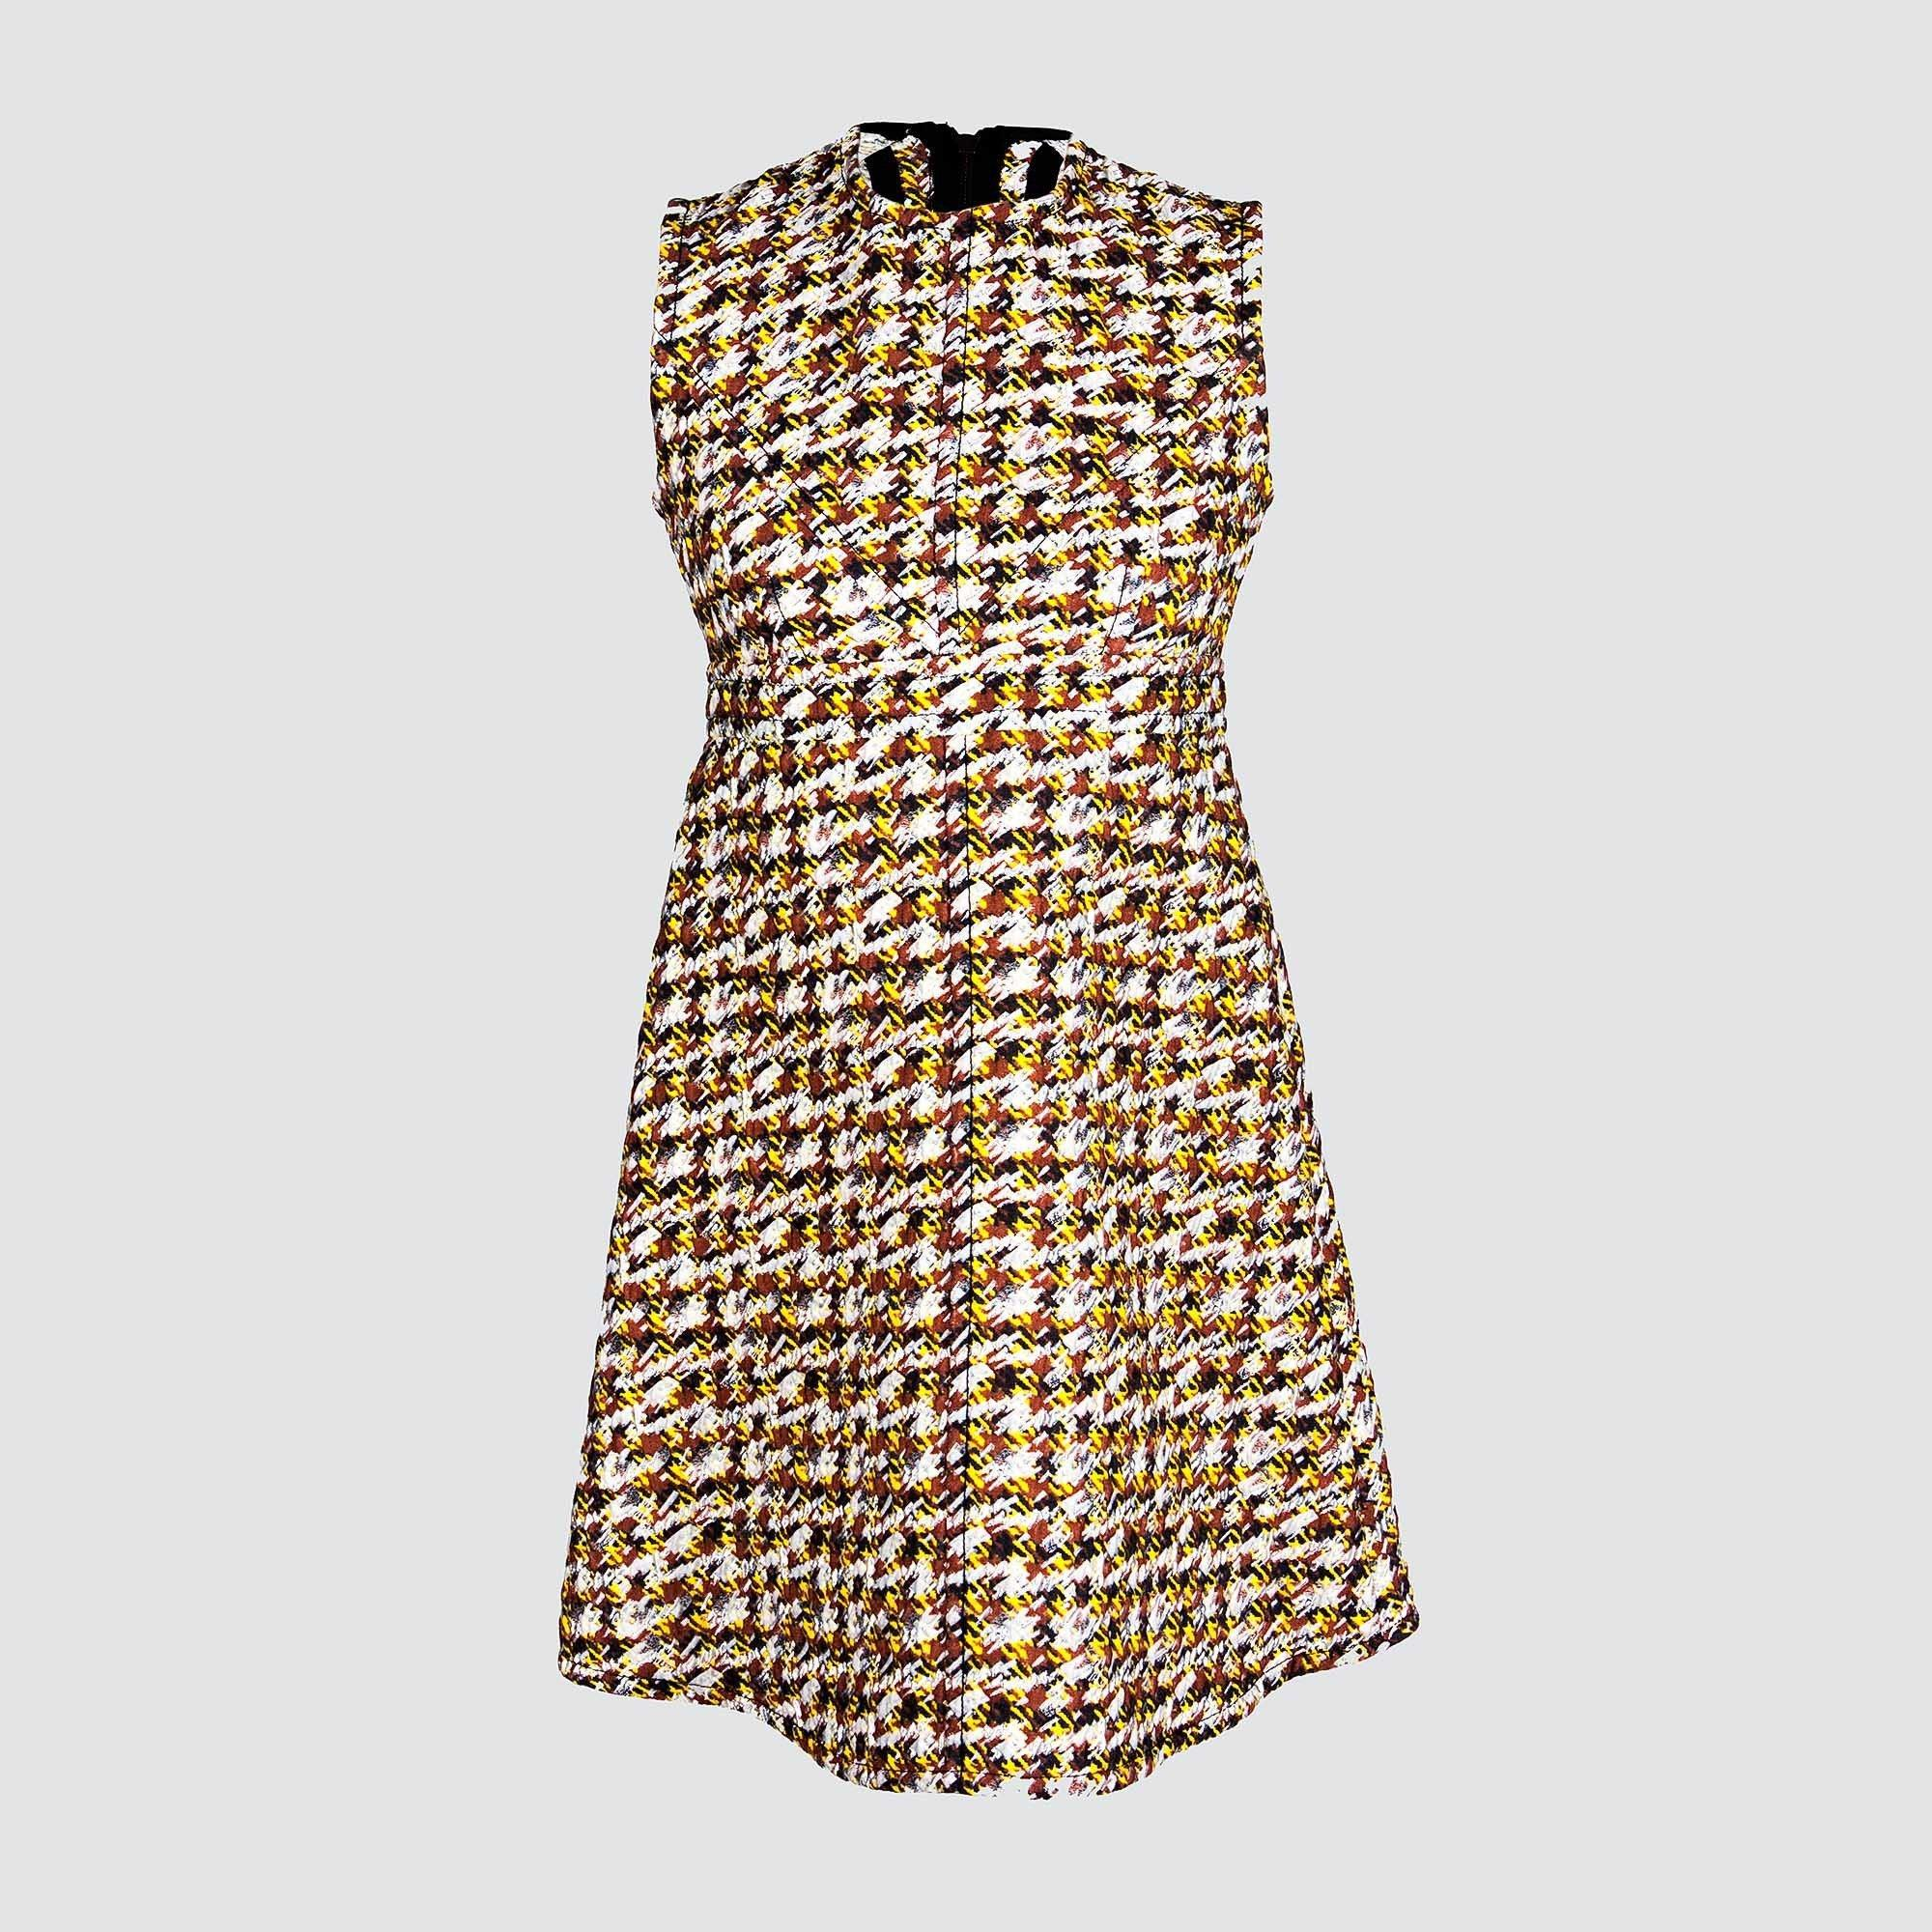 Louis Vuitton Knit Patterned Dress